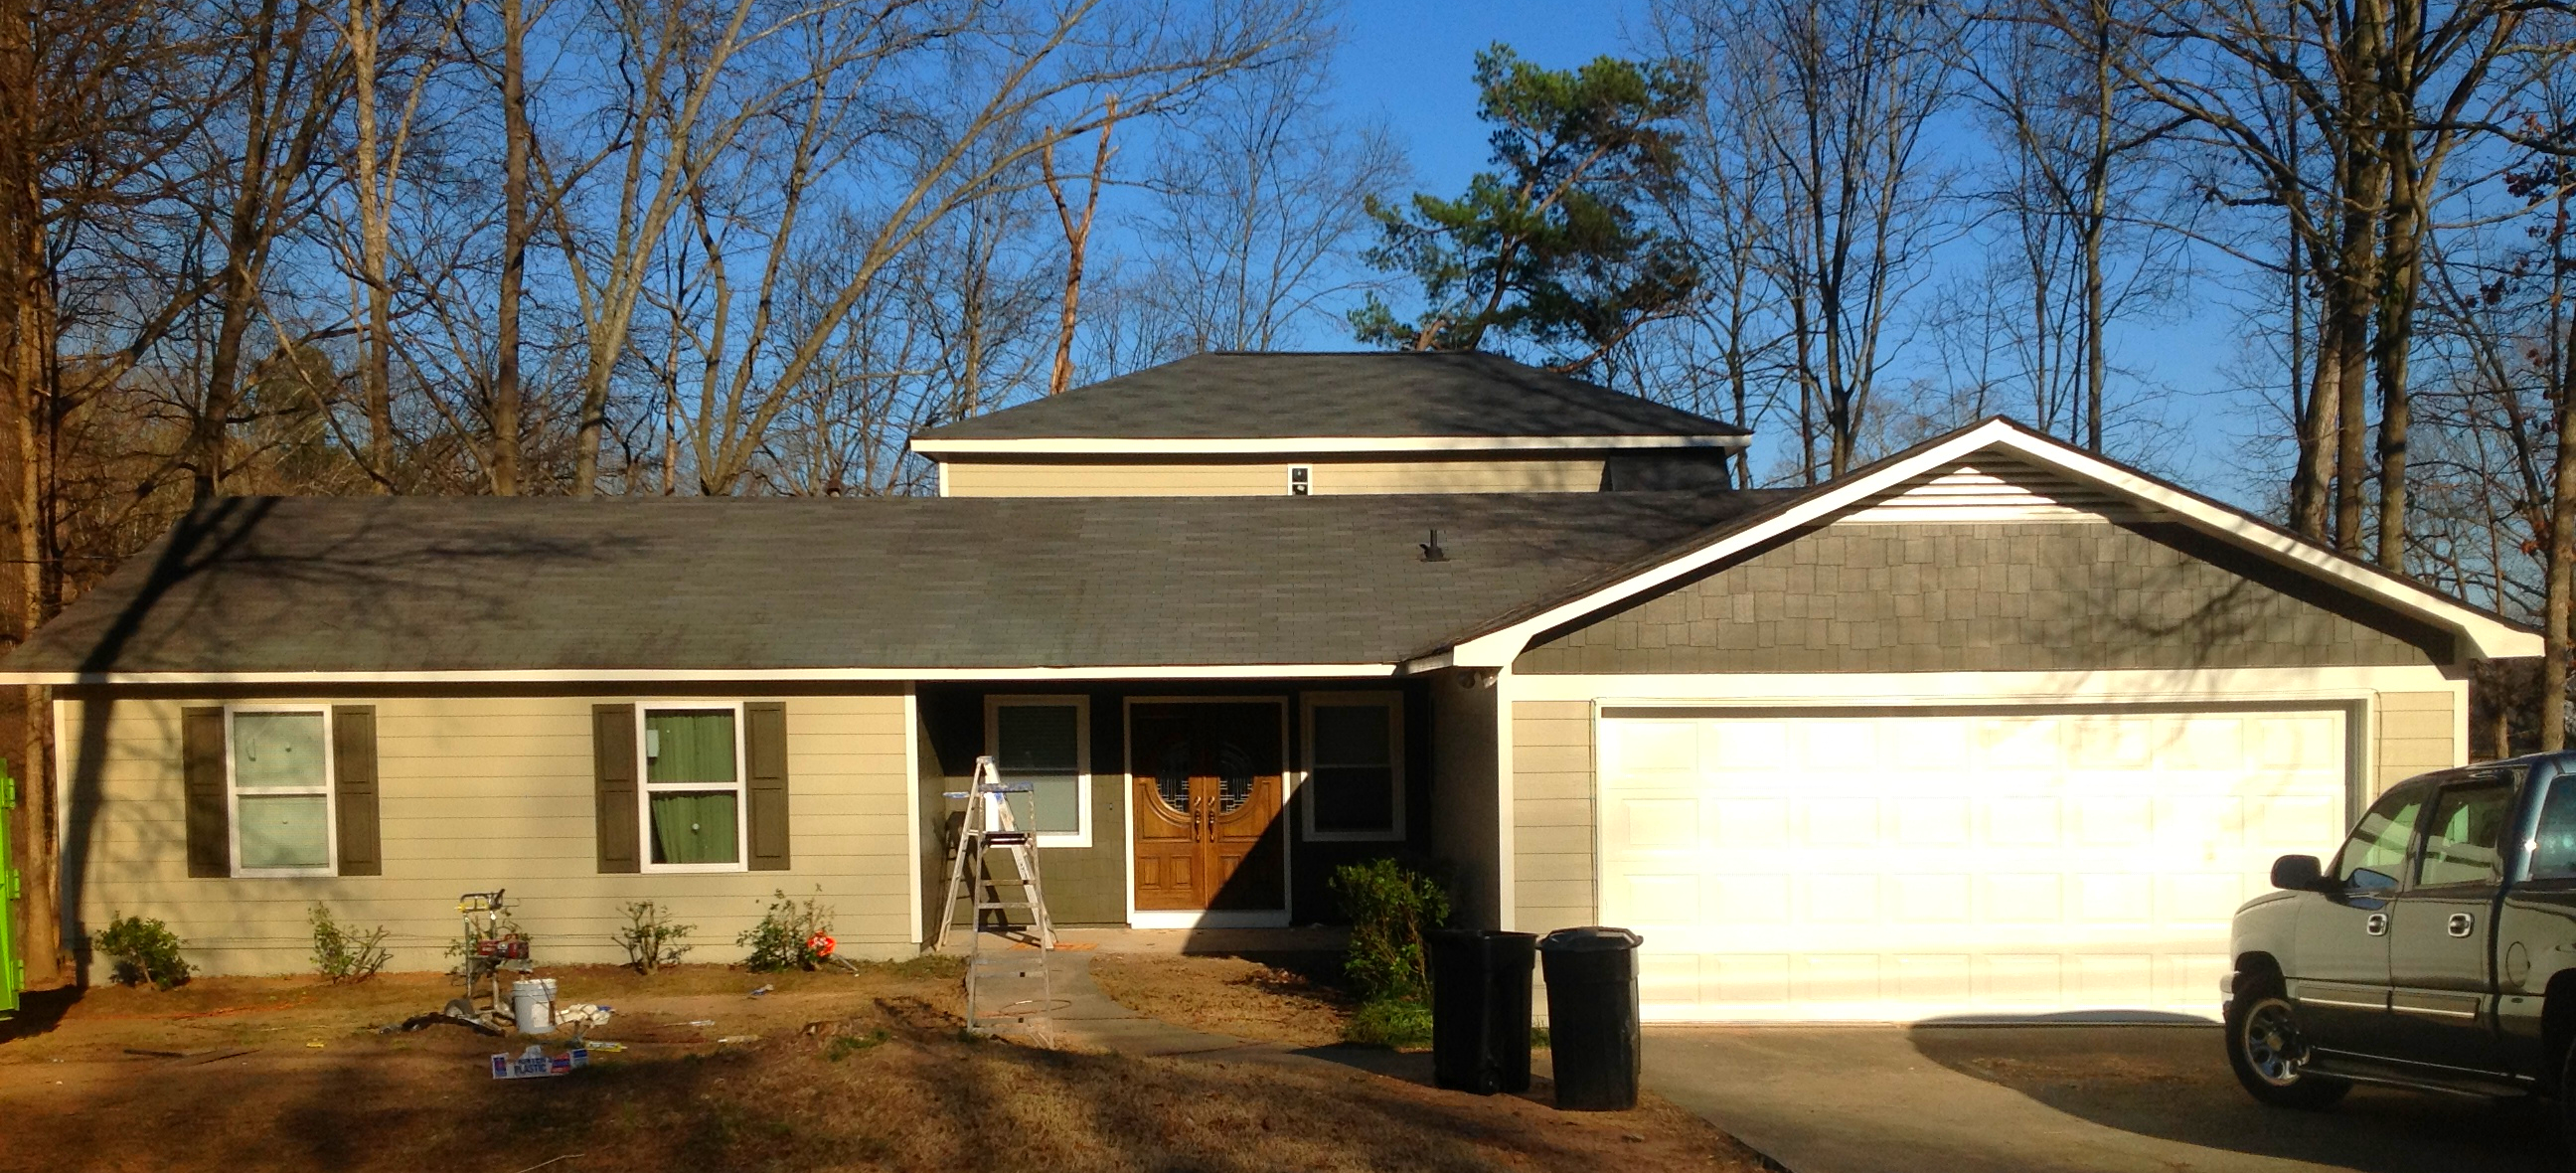 Mrs Morgan Home Makeover at Lithonia, GA Full Siding Replacement and New Deck